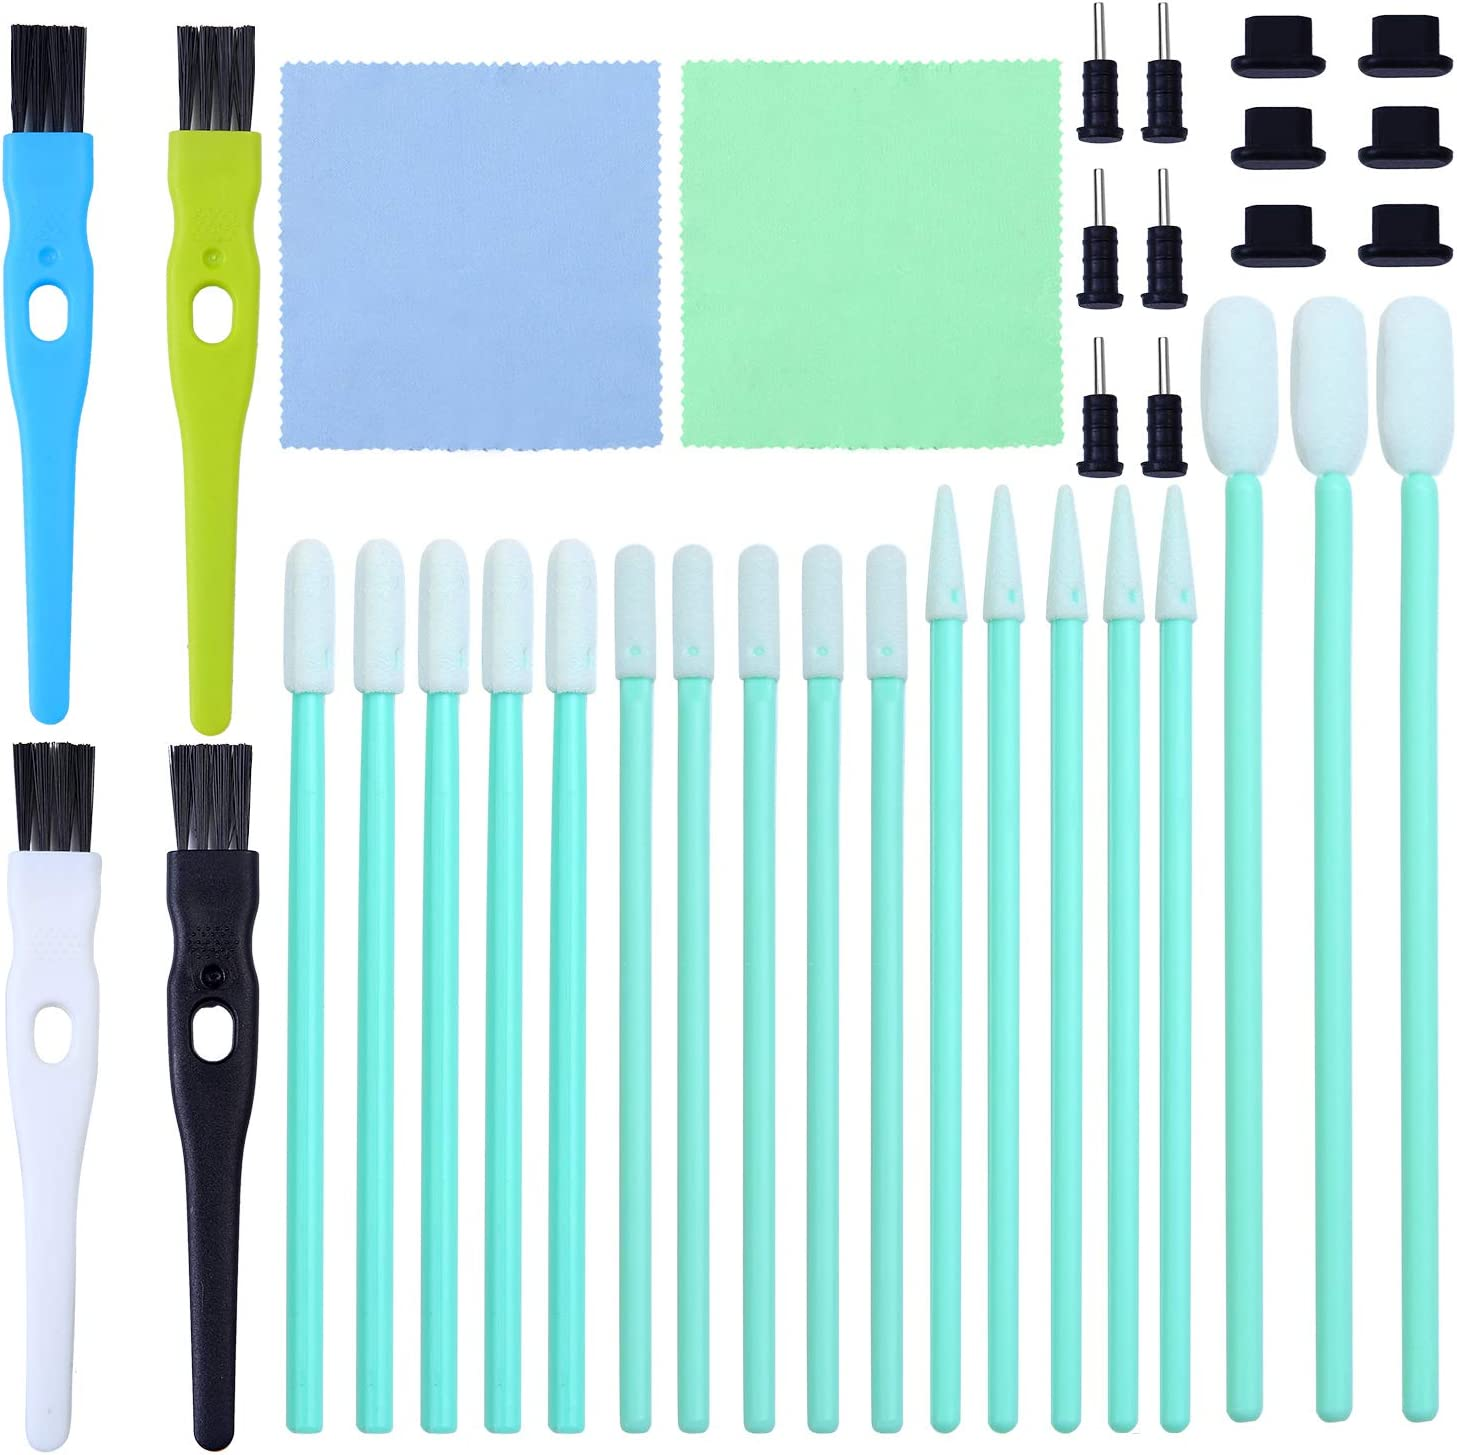 Aneco Genuine Free Shipping 58 Pieces Cell Phone Cleaning Kit Brush Set P 70% OFF Outlet USB Charging